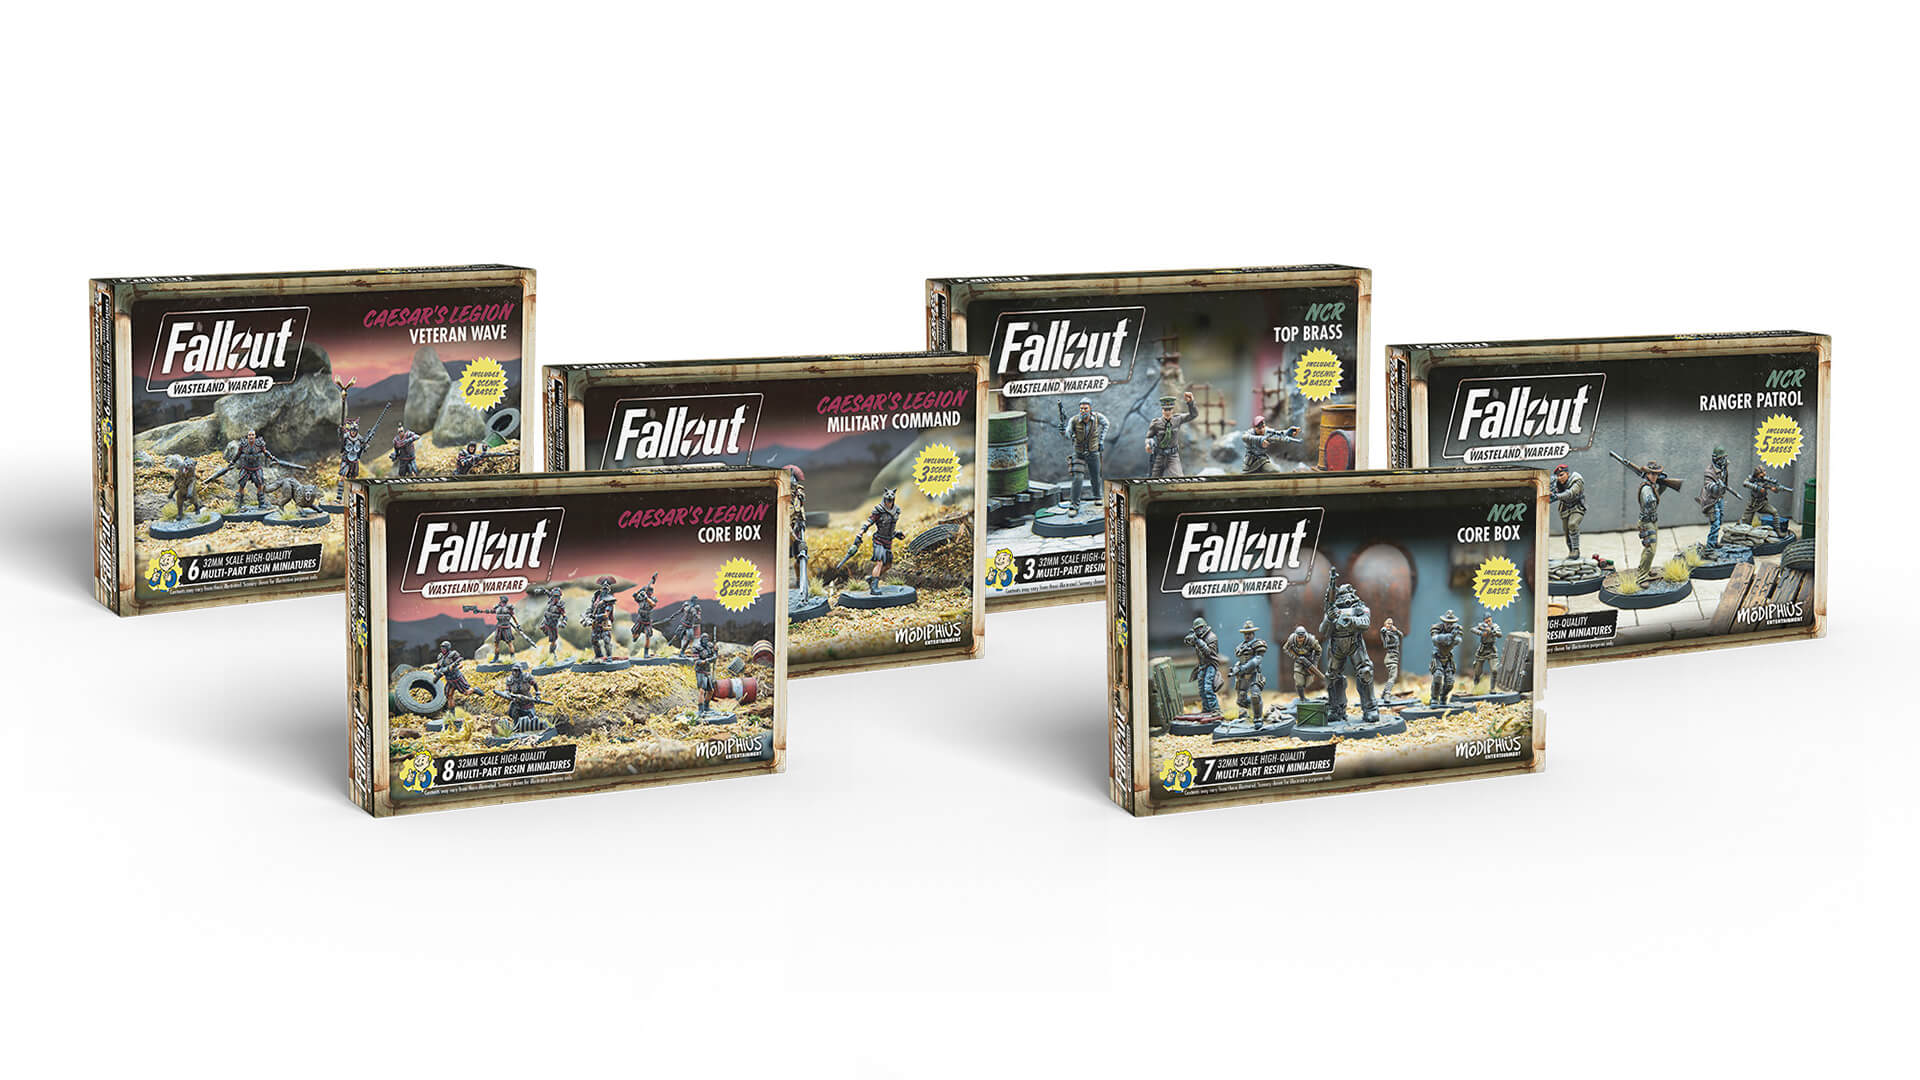 Fallout Wasteland Warfare Expansion Takes Us Back to New Vegas